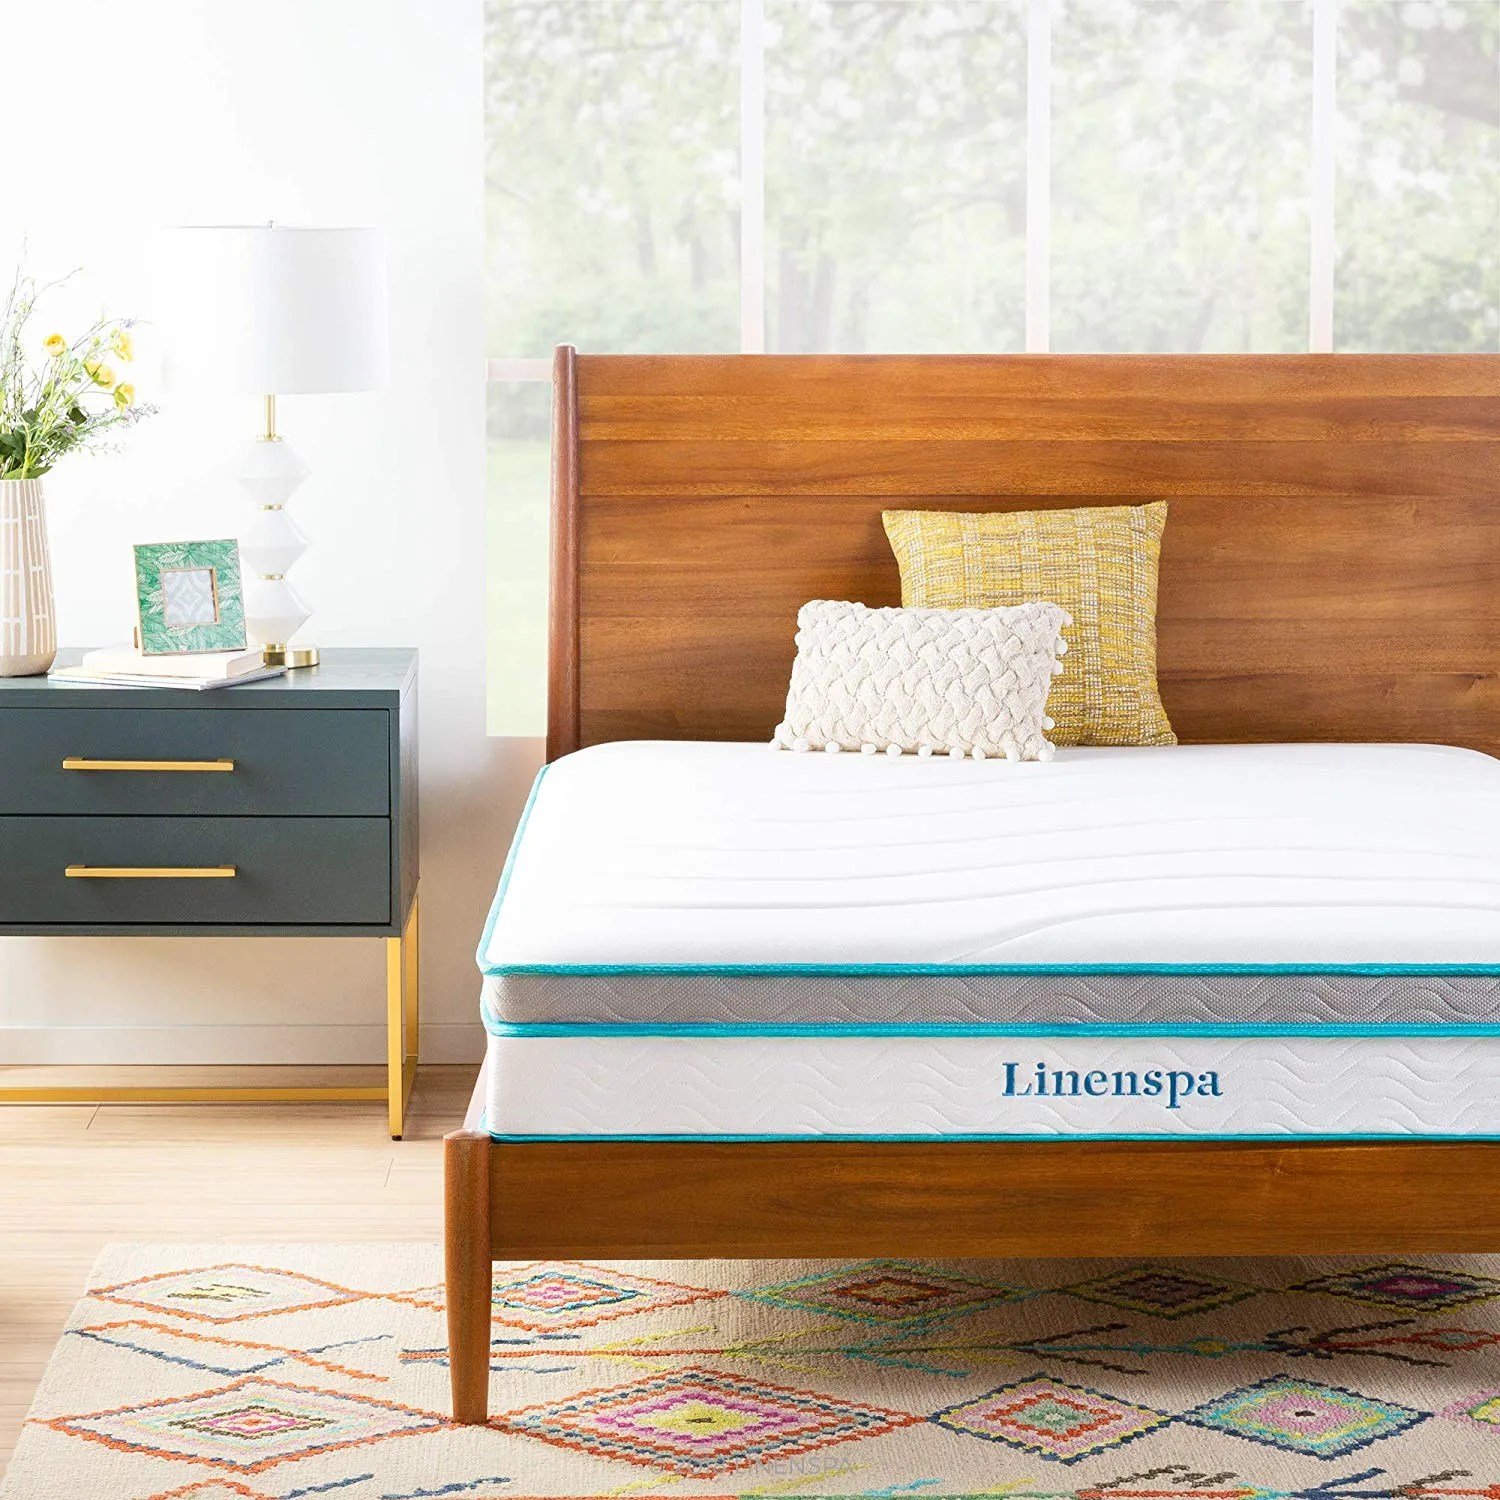 Best Mattress Amazon What Does It Take To Be The Best Selling Mattress On Amazon